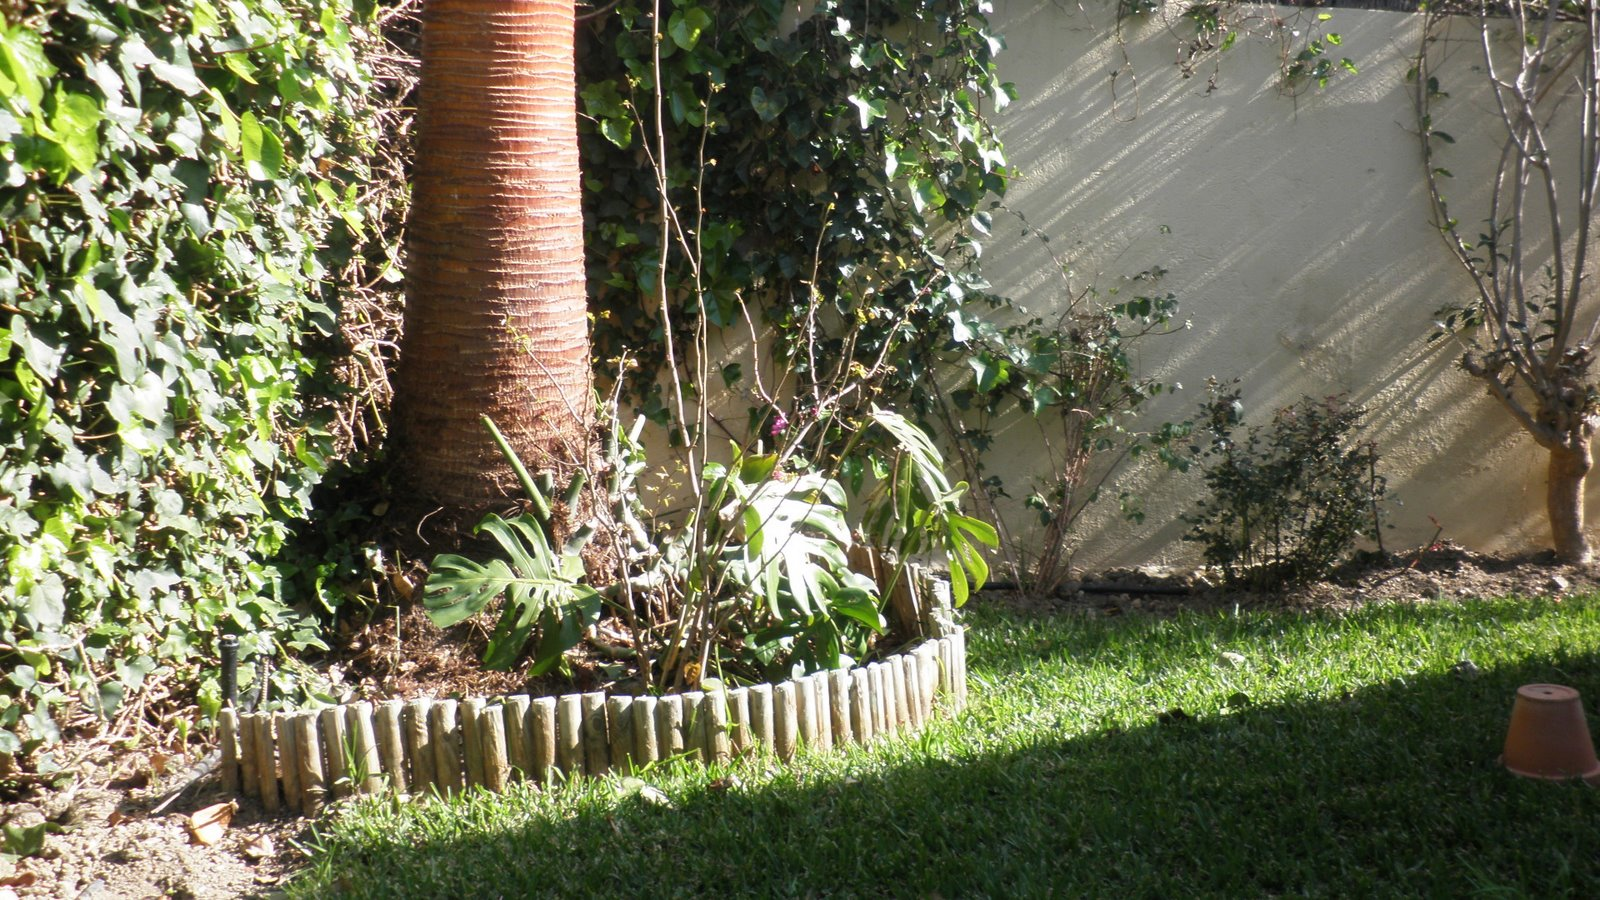 Jardinbio jardin peque o comienzo de decoracion 2 for Decoracion para jardin pequeno